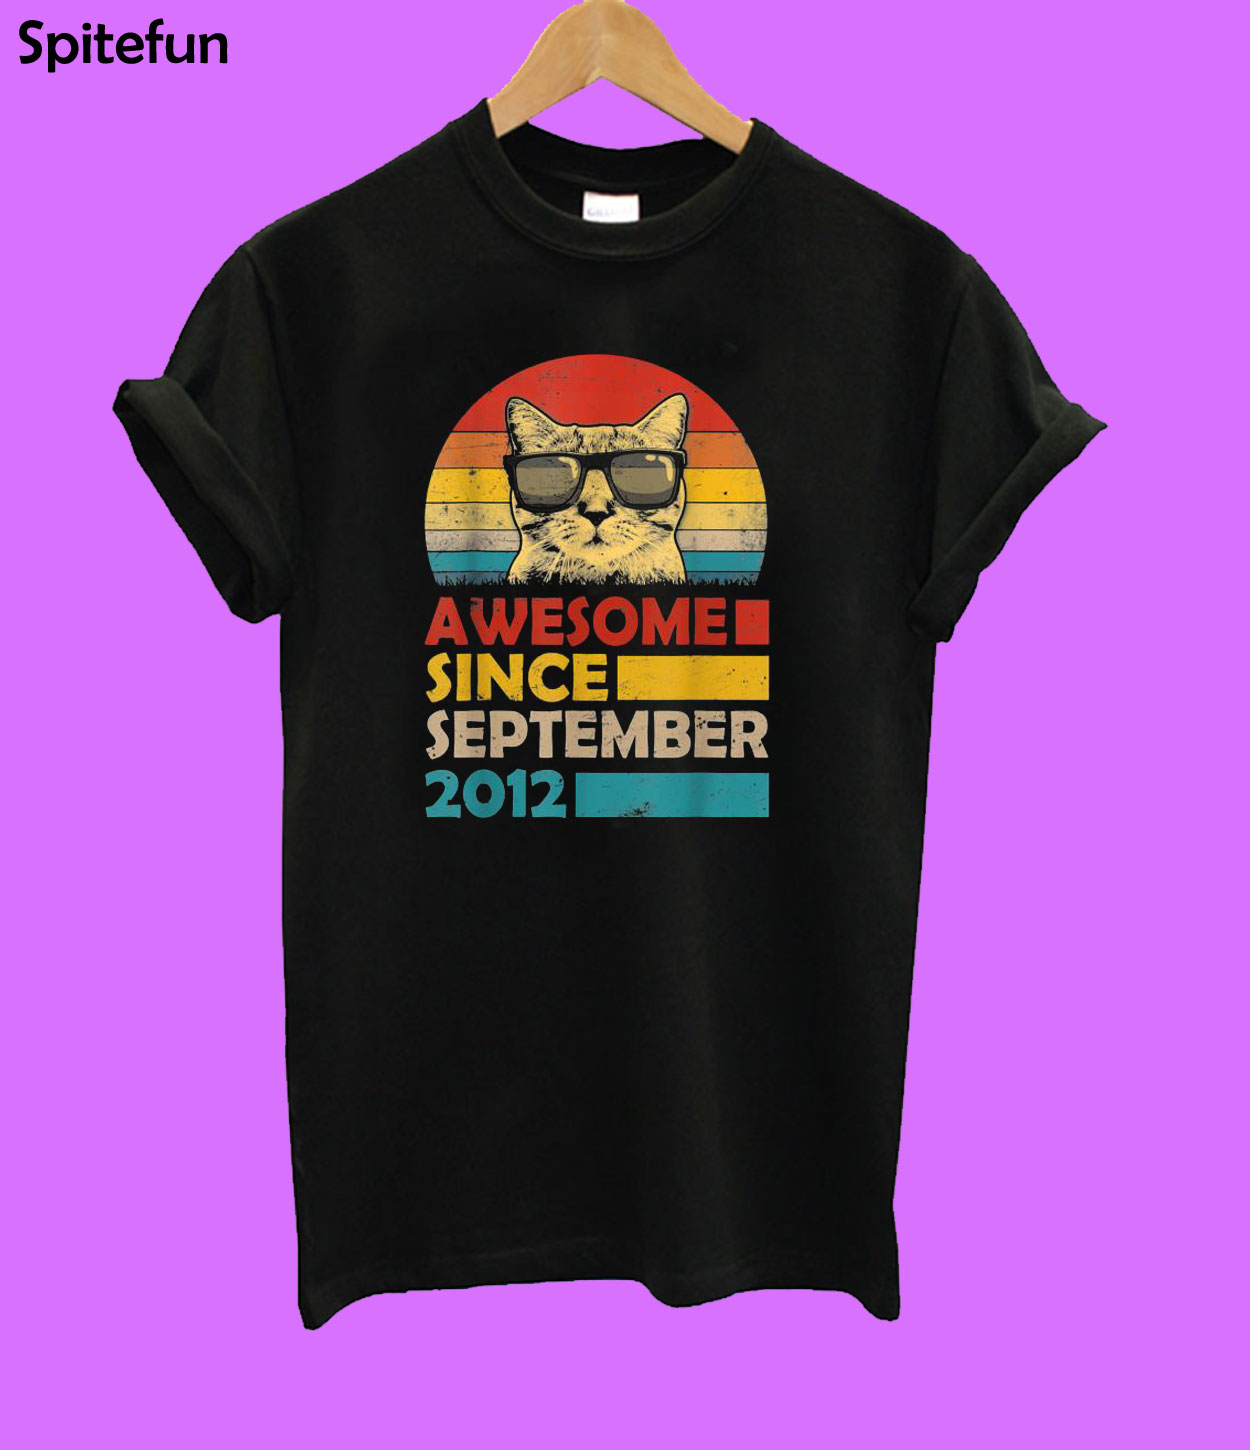 Awesome Since September 2012 T-shirt